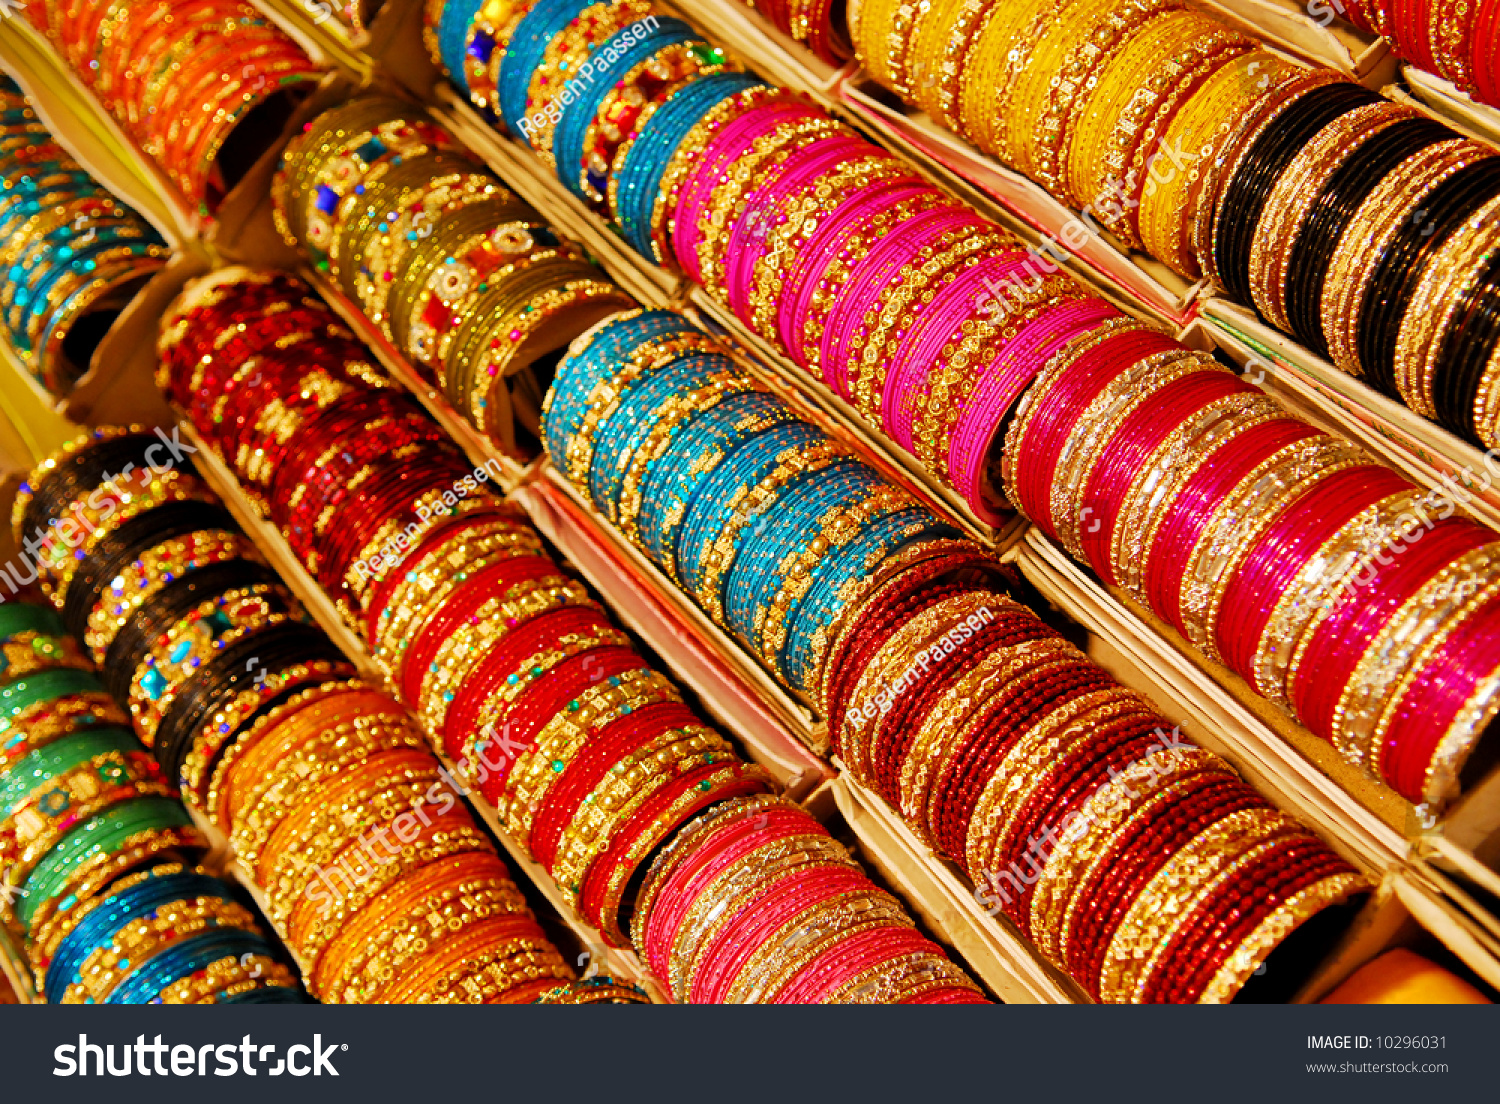 Background Colorful Indian Bangles Stock Photo 10296031